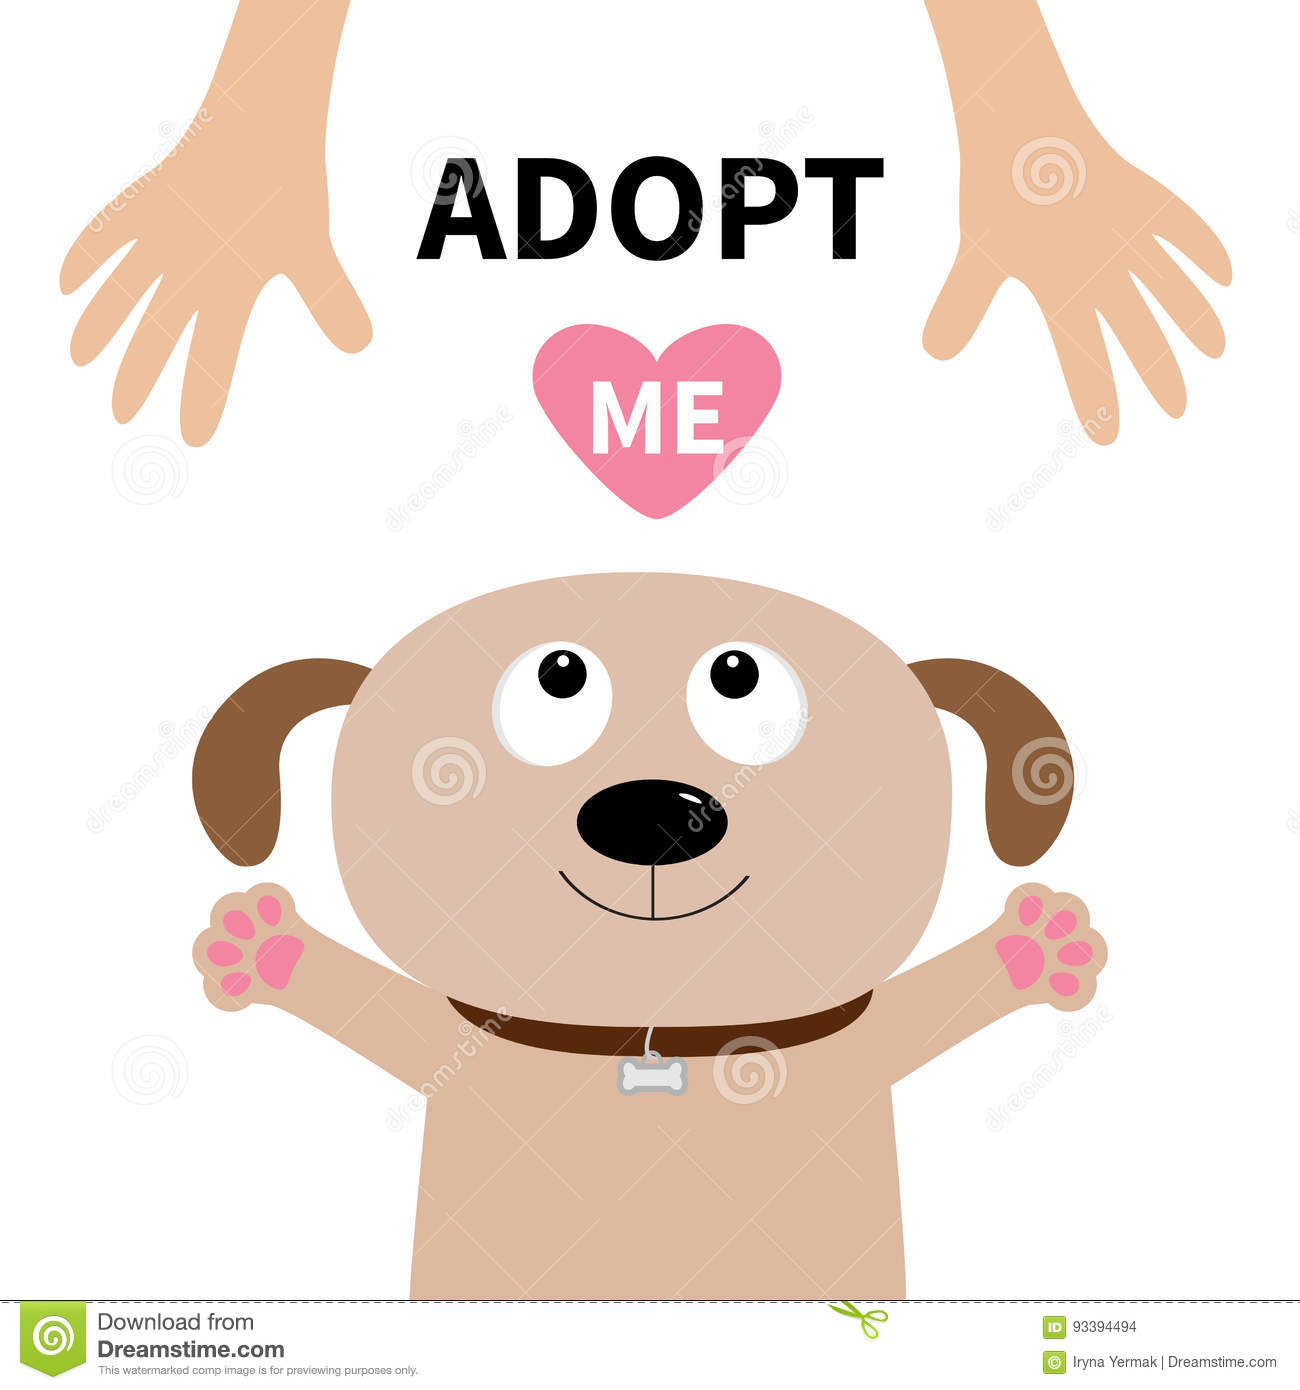 Adopt Me Dog Face Pet Adoption Puppy Pooch Looking Up To Human